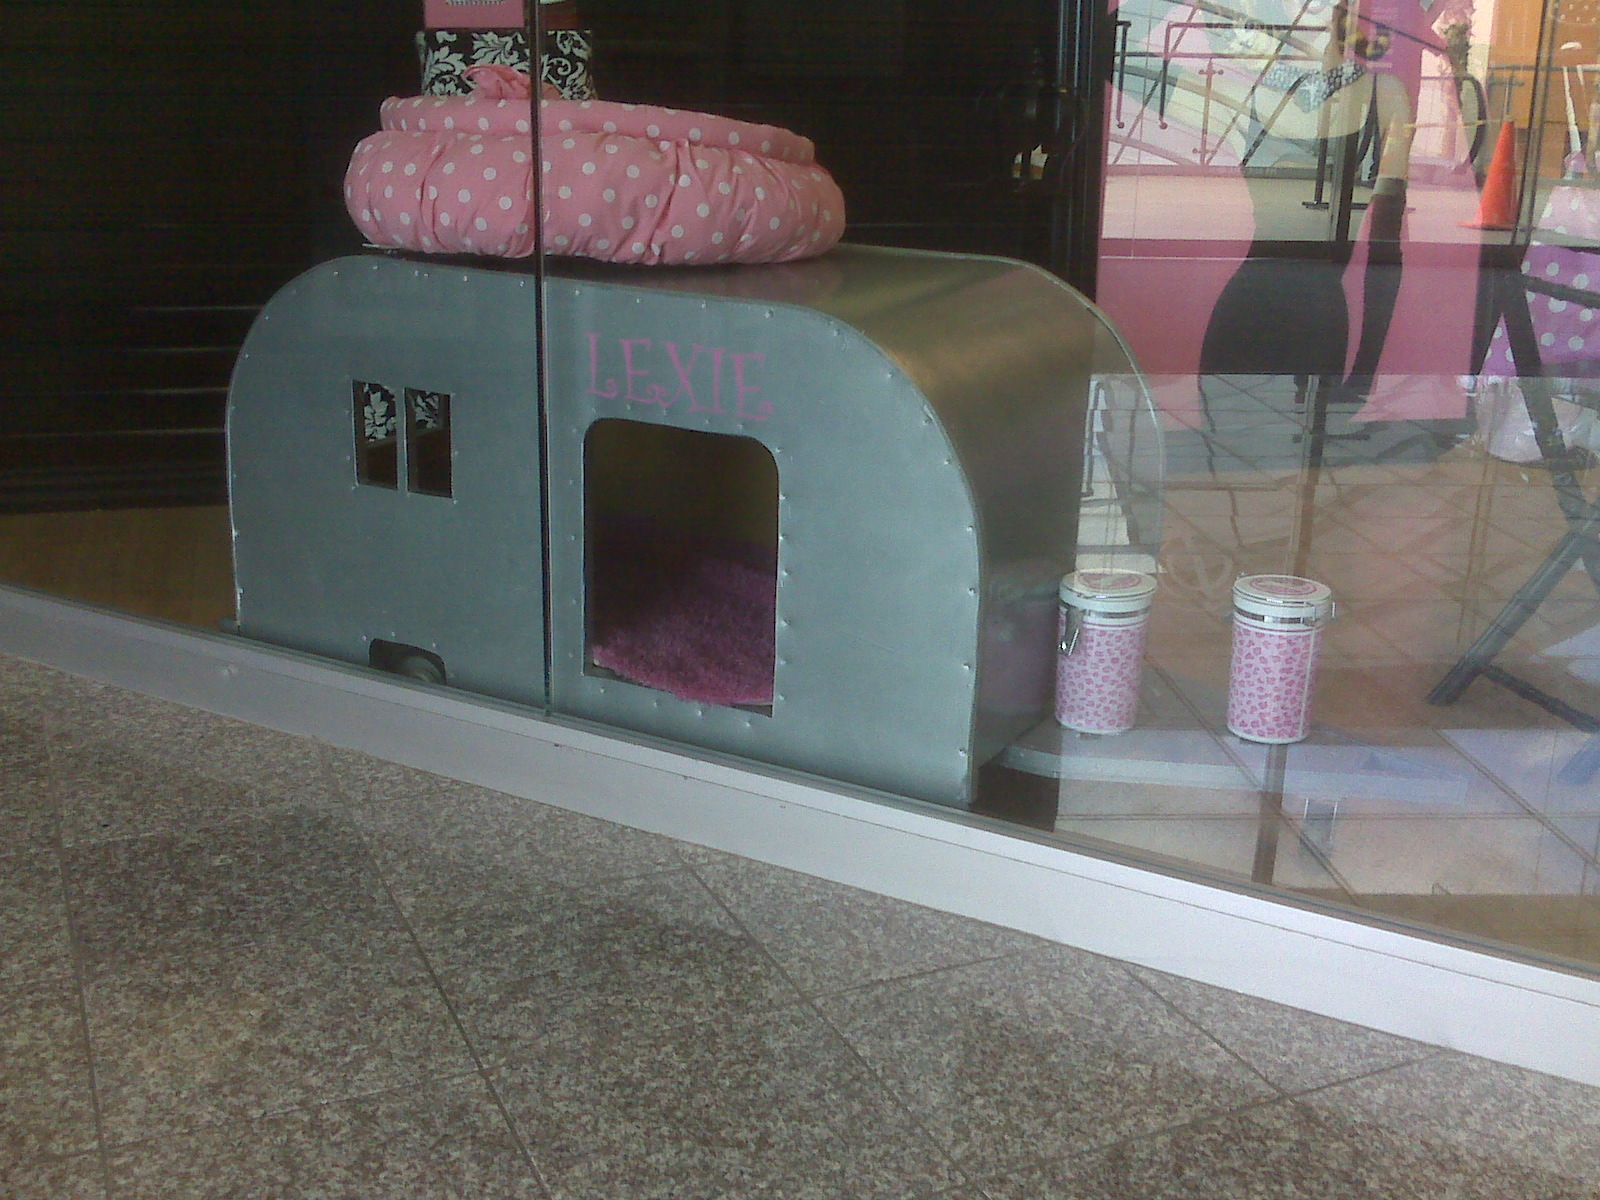 Trailer Dog House dog bed dog house trailer airstream | dogs | pinterest | dog